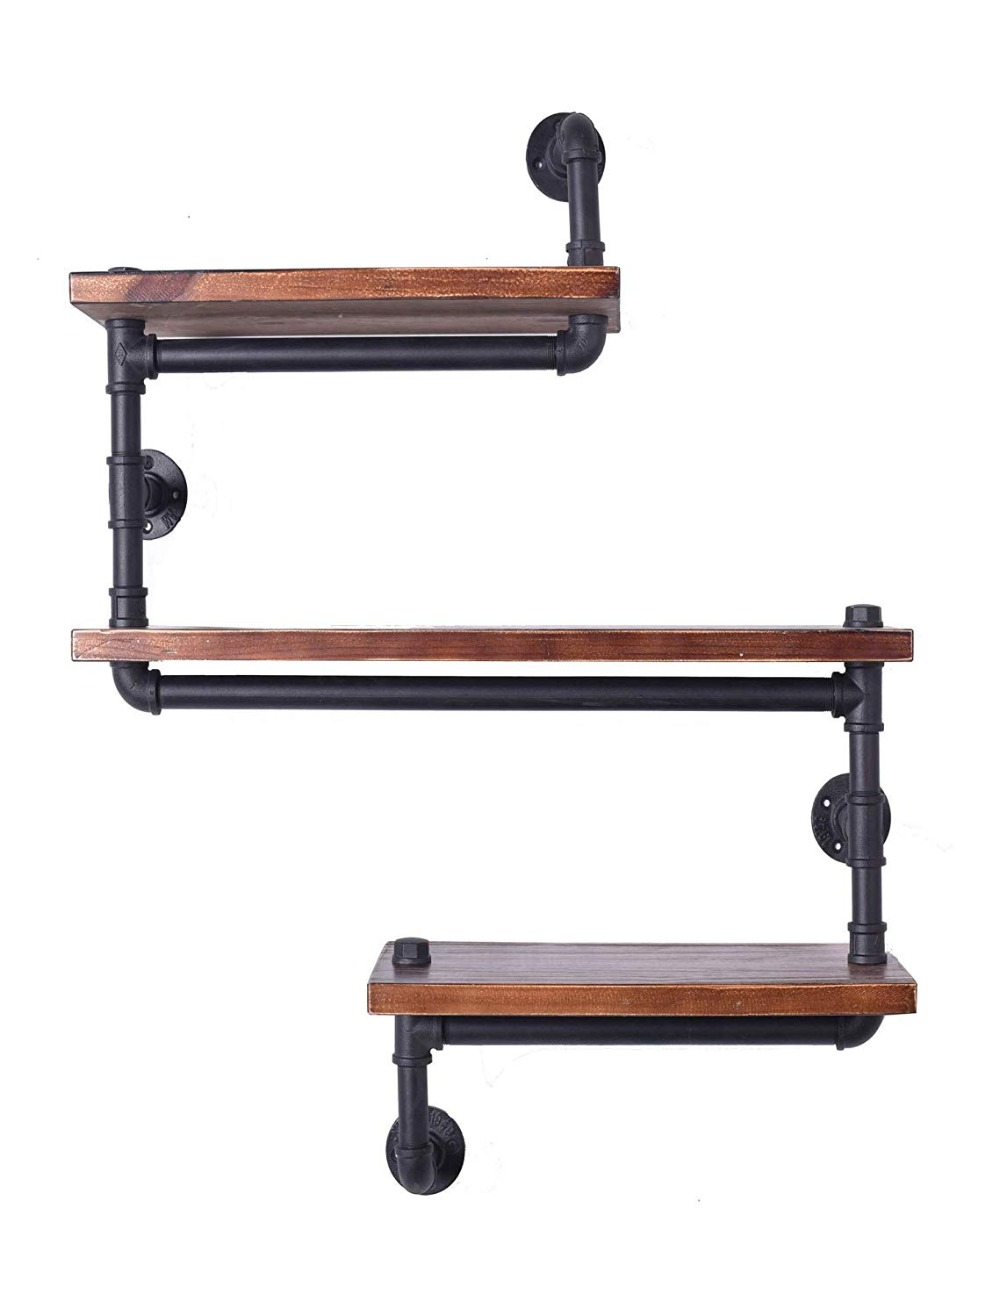 Floating Wall Shelves Industrial Rustic Iron Pipe Shelf 3 Tiers Wooden Board Restaurant Kitchen Bathroom Decorative Wall ShelfFloating Wall Shelves Industrial Rustic Iron Pipe Shelf 3 Tiers Wooden Board Restaurant Kitchen Bathroom Decorative Wall Shelf